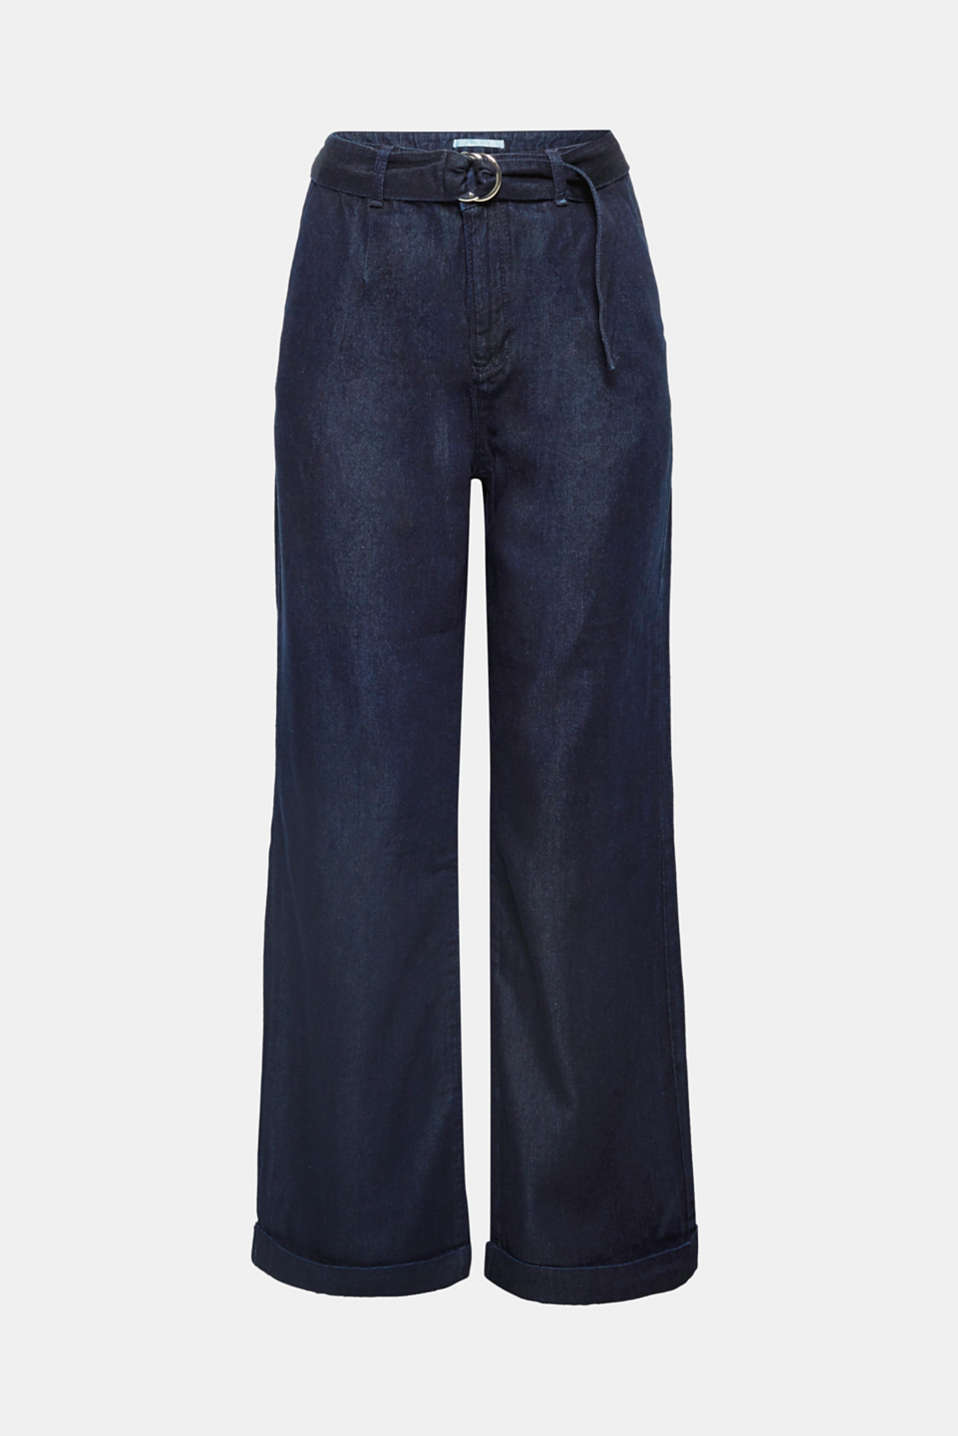 With a 80s vibe: these pleasantly lightweight dark denim jeans are trendy and chic thanks to their waist pleats, matching fabric belt and wide flared leg!